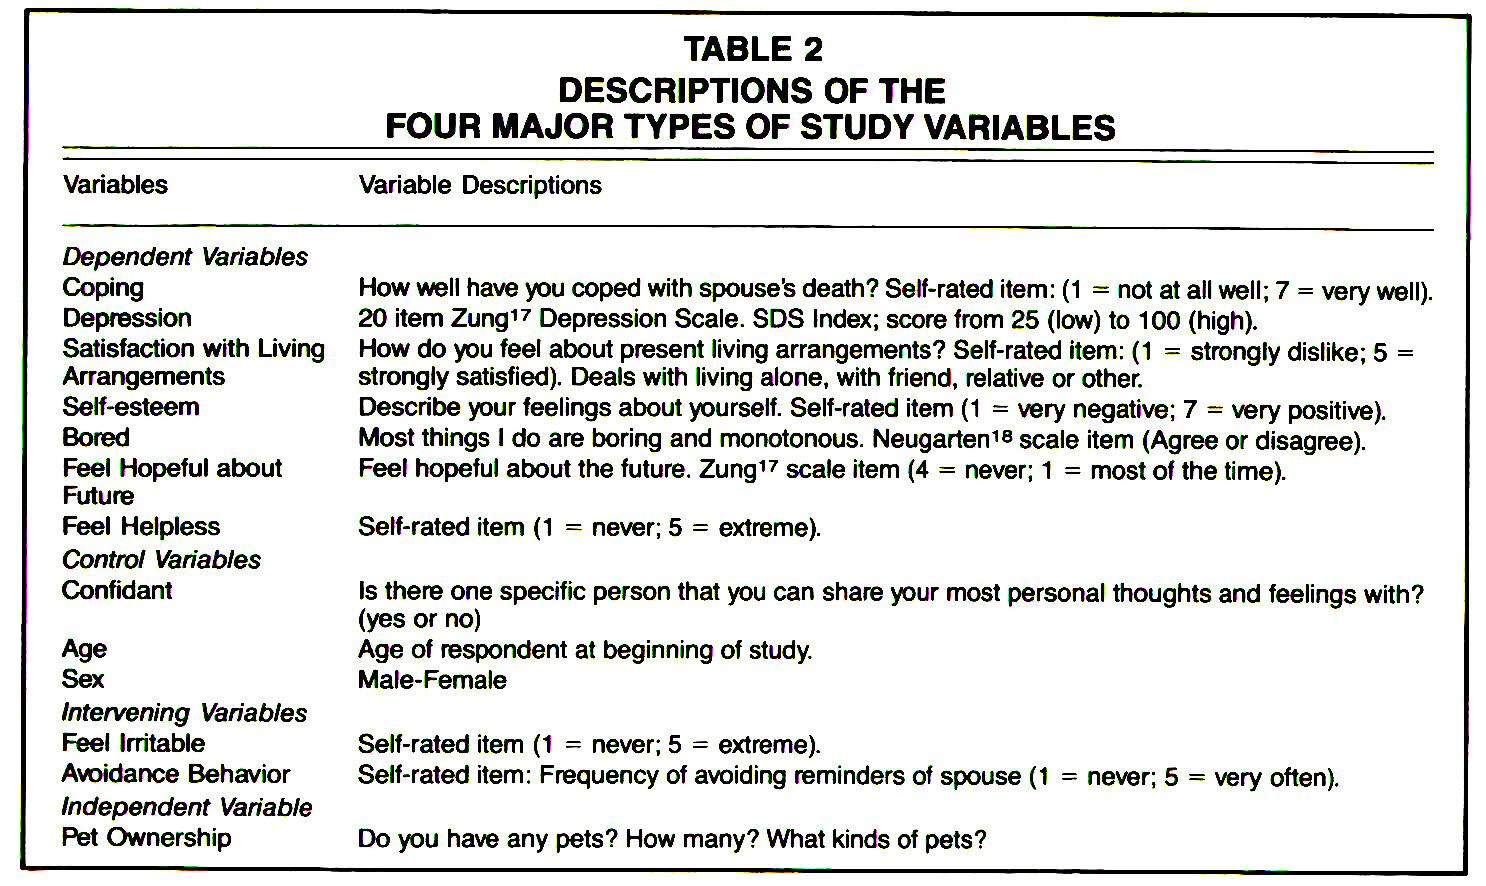 TABLE 2DESCRIPTIONS OF THE FOUR MAJOR TYPES OF STUDY VARIABLES